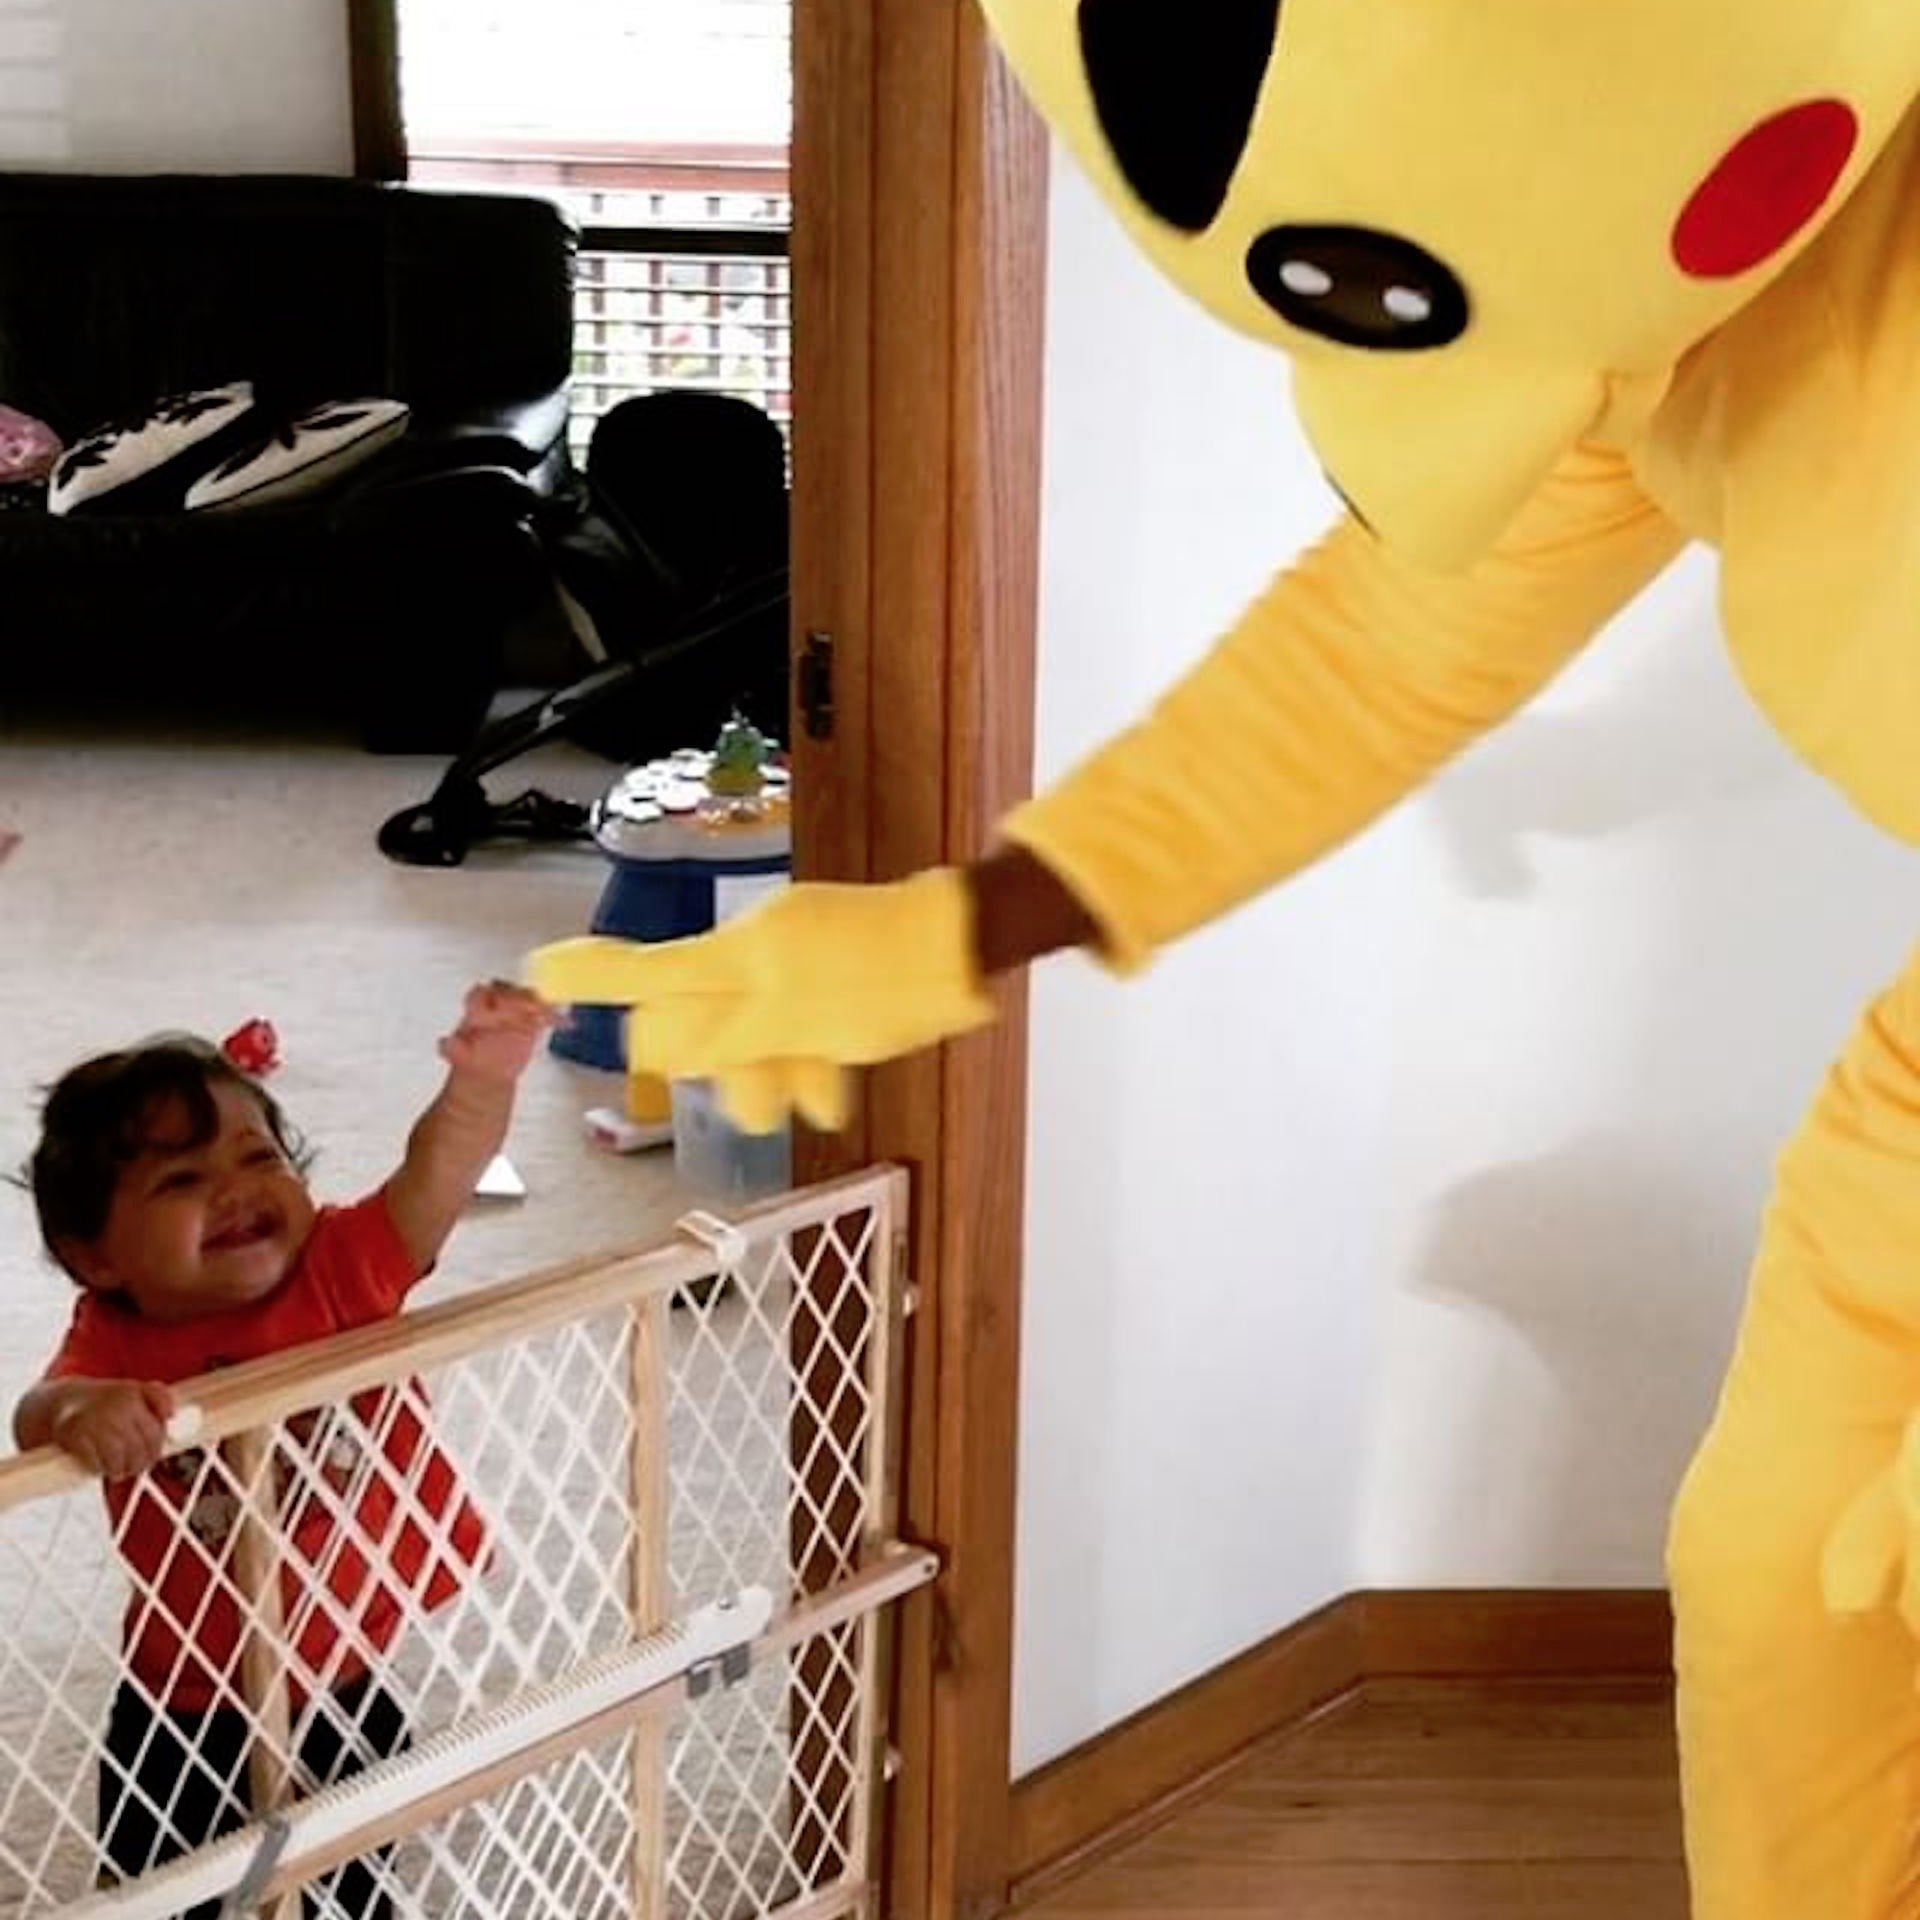 dwayne johnson's pikachu halloween costume with baby jasmine